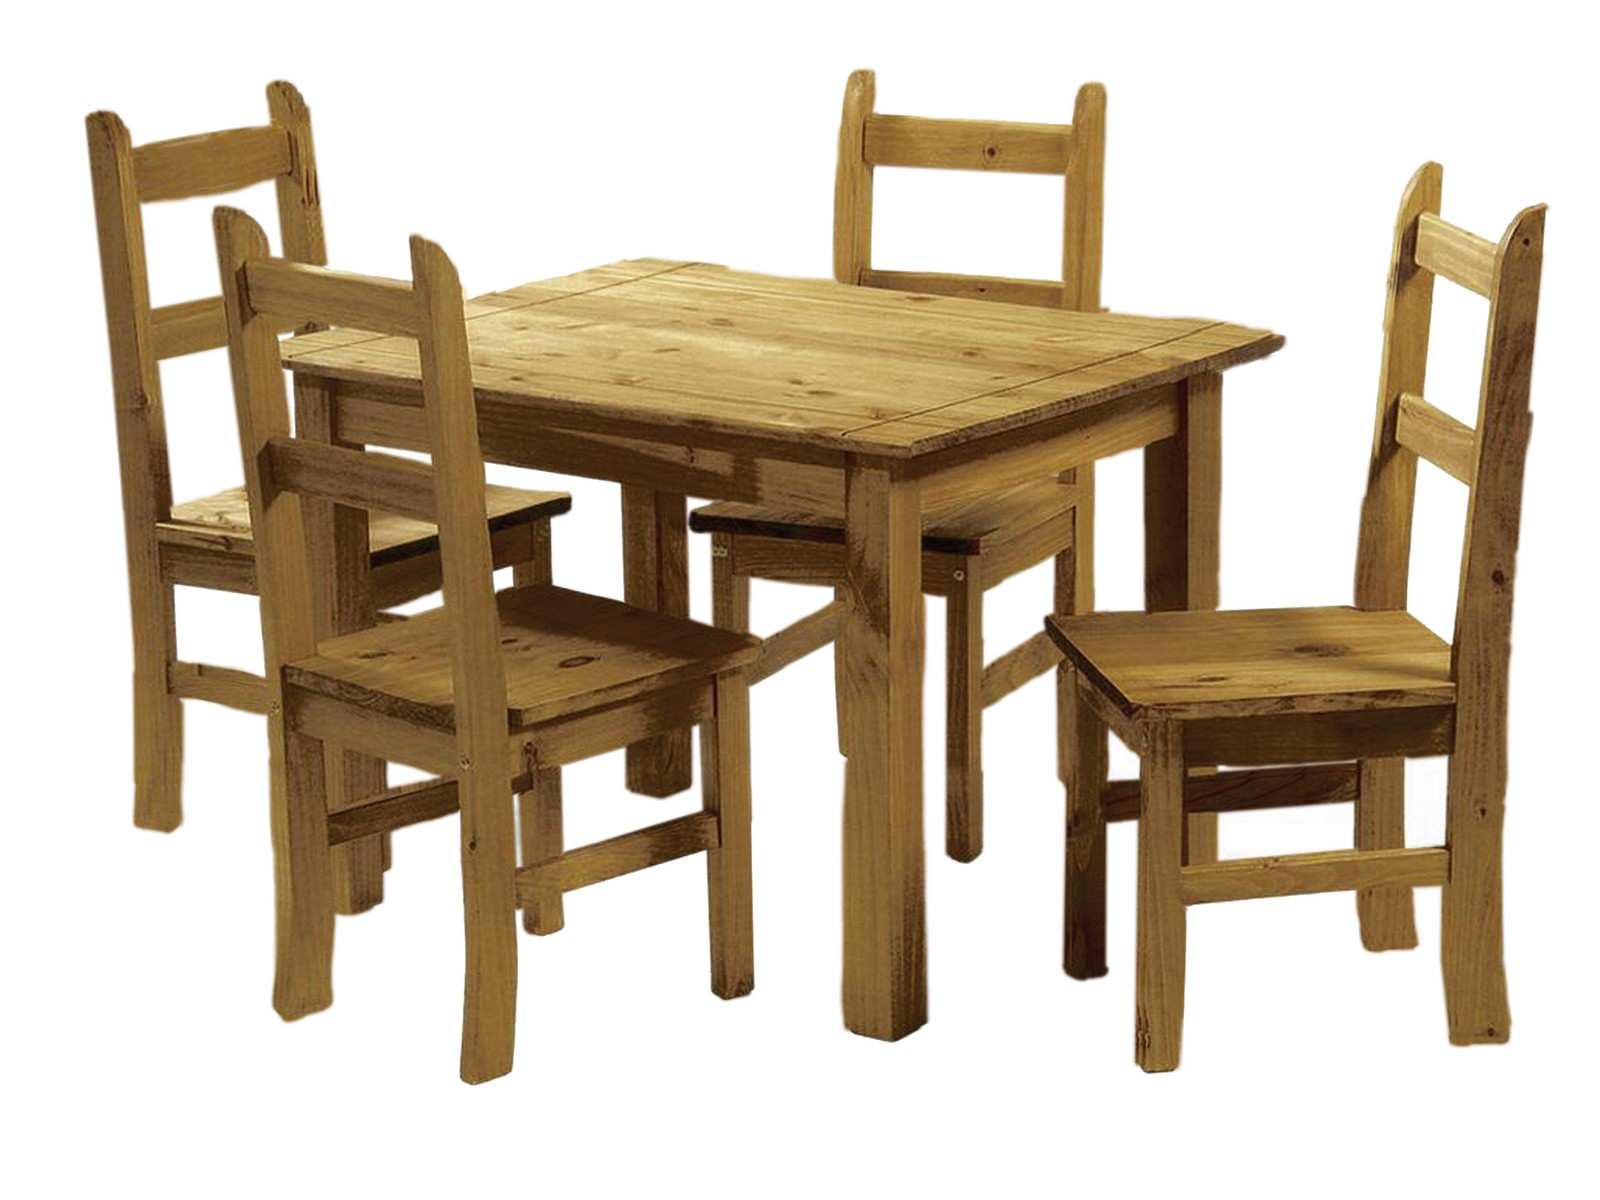 Details About Mexican Pine Dining Table And 4 Chairs Corona Budget Set Solid Wood